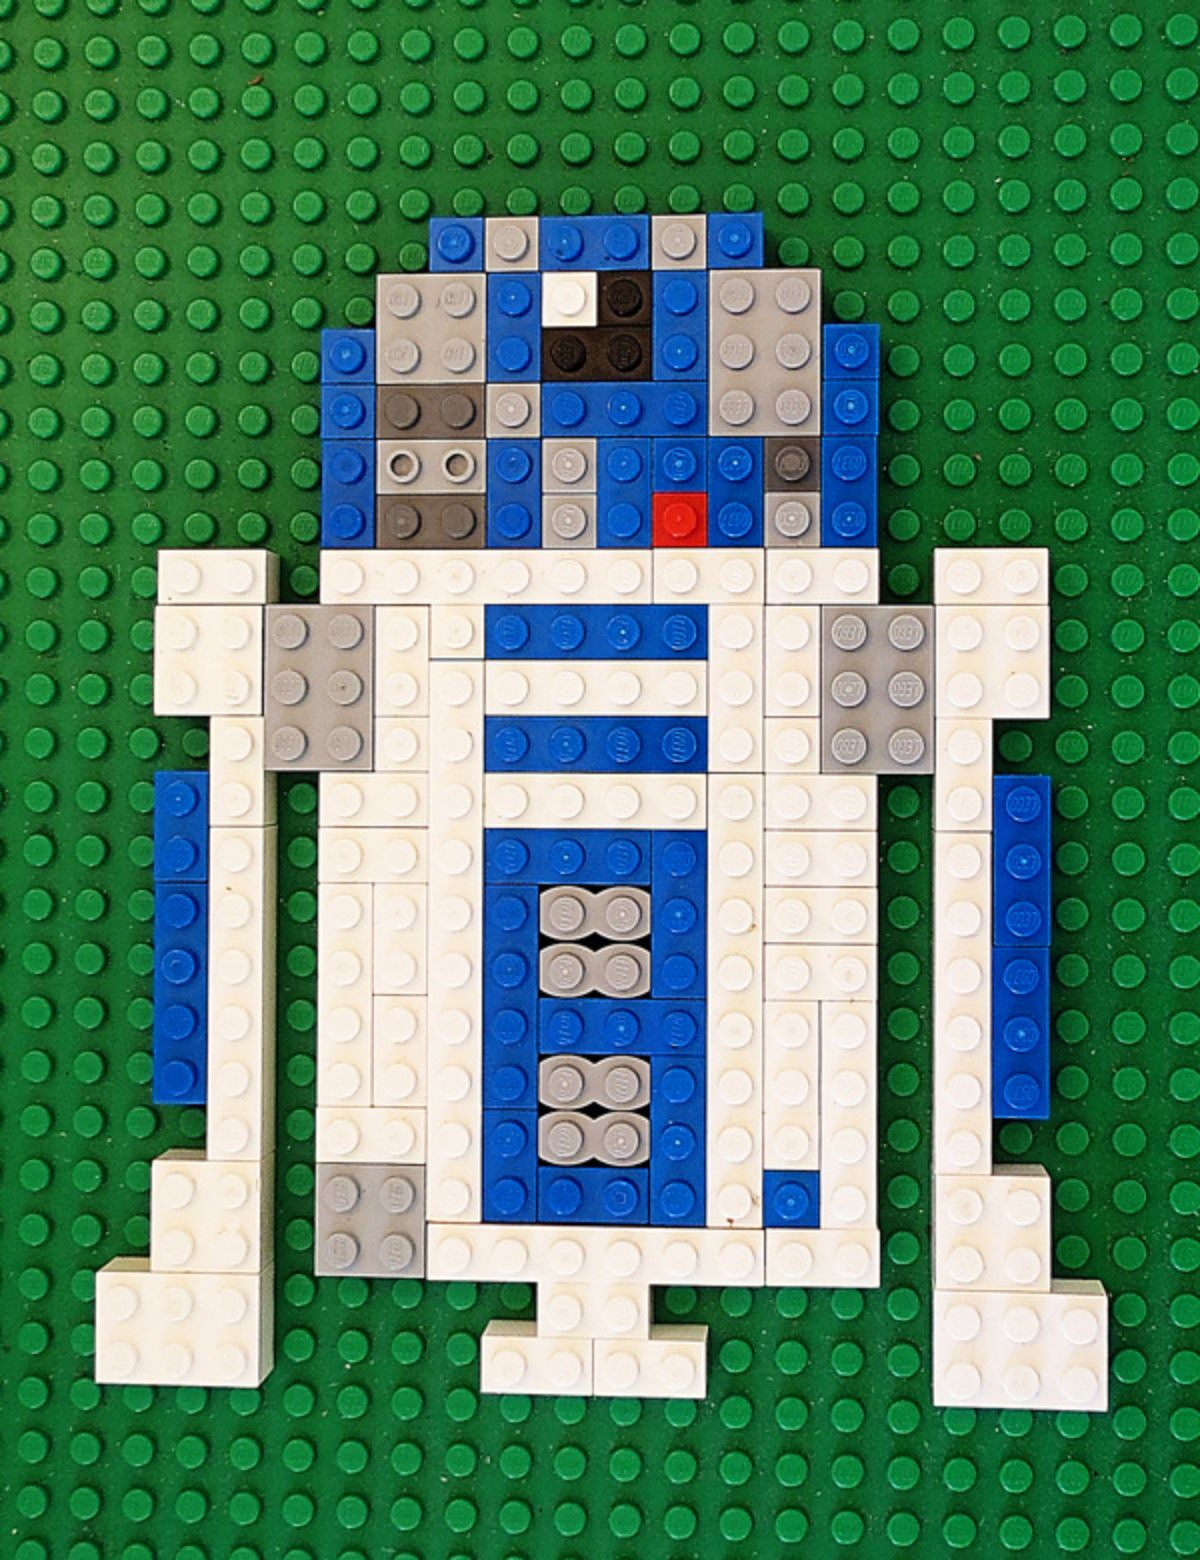 on a green lego board background is an R2D2 figure made of lego